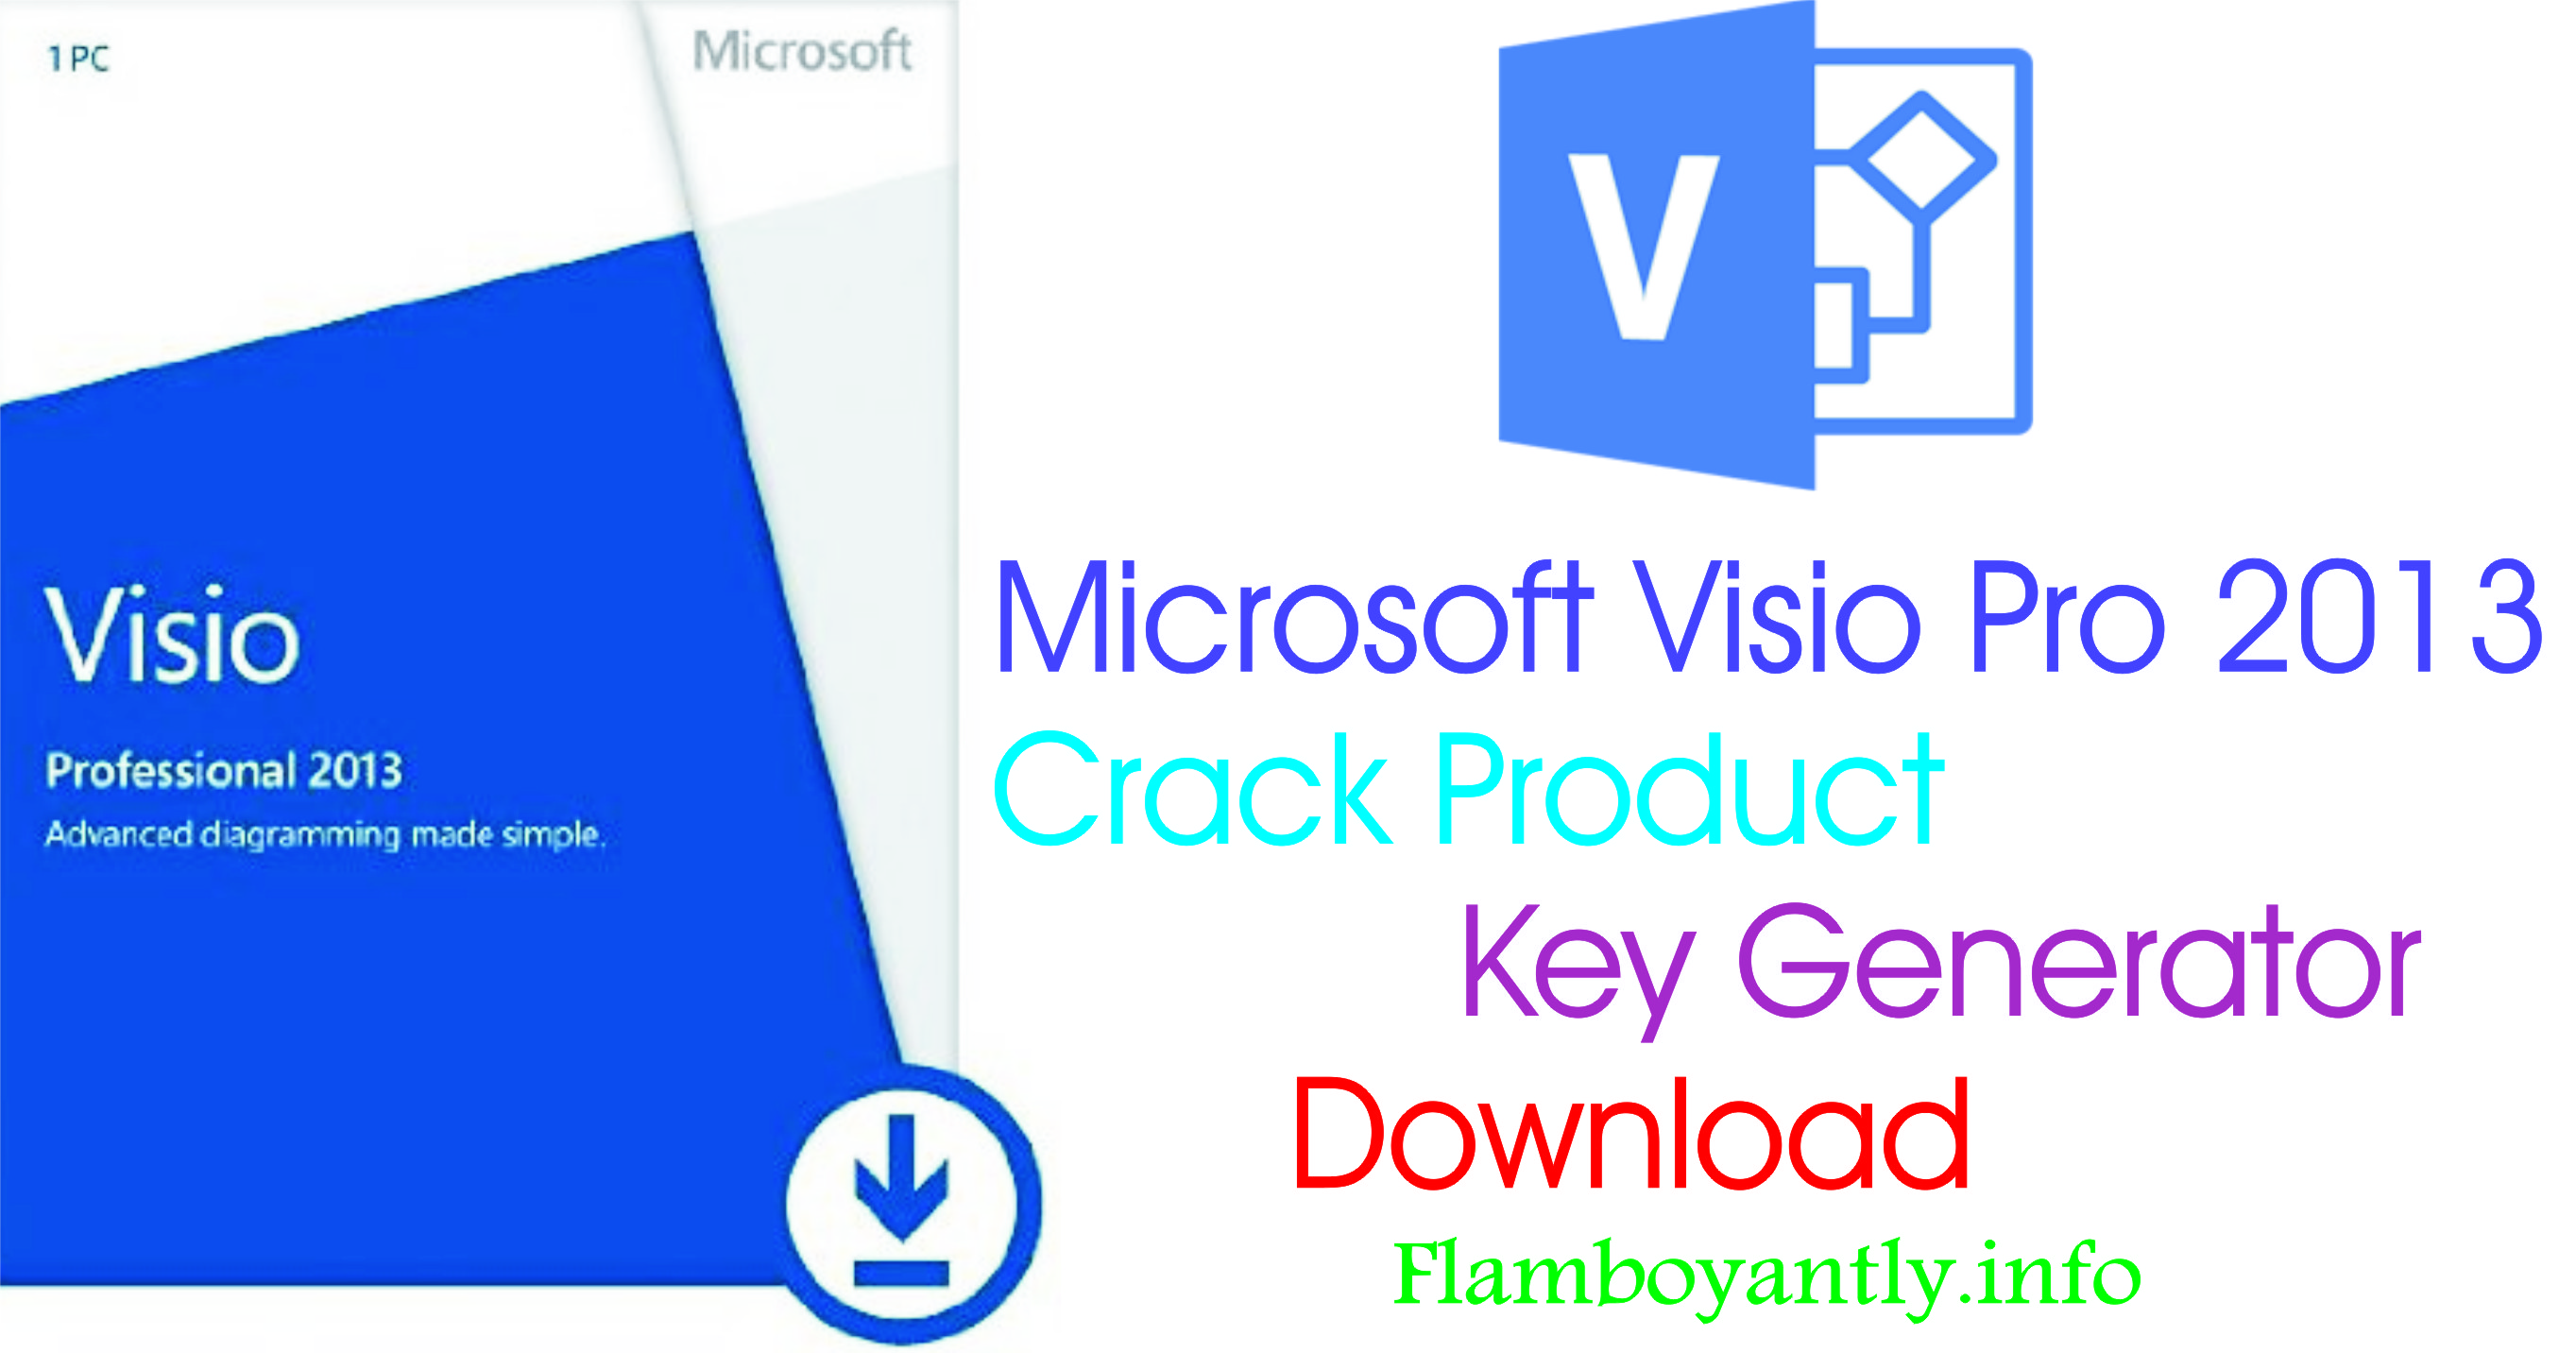 microsoft visio pro 2013 crack product key generator irish microsoft visio pro 2013 topic112696html ms visio 2007 product key ms visio 2007 product key - Visio 2007 Serial Key